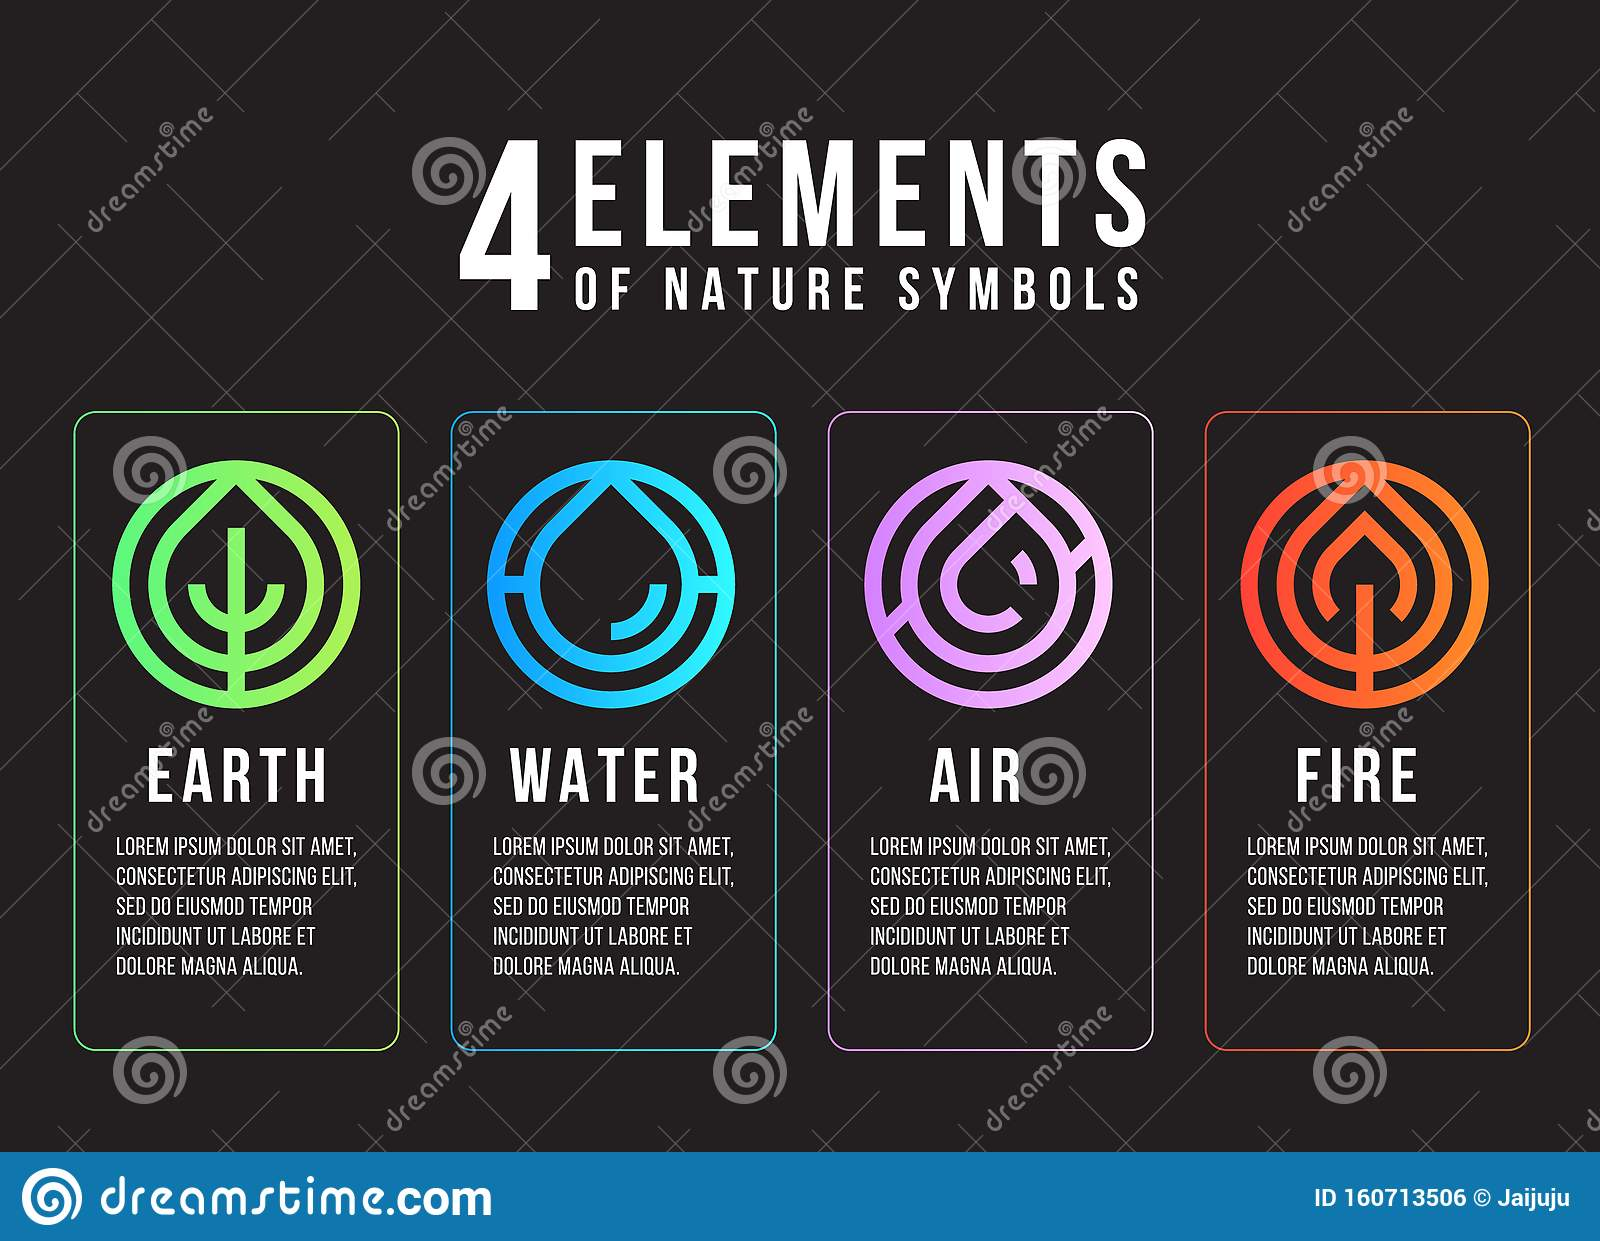 https www dreamstime com elements nature symbols abstract line border circle style earth fire air water vector design image160713506